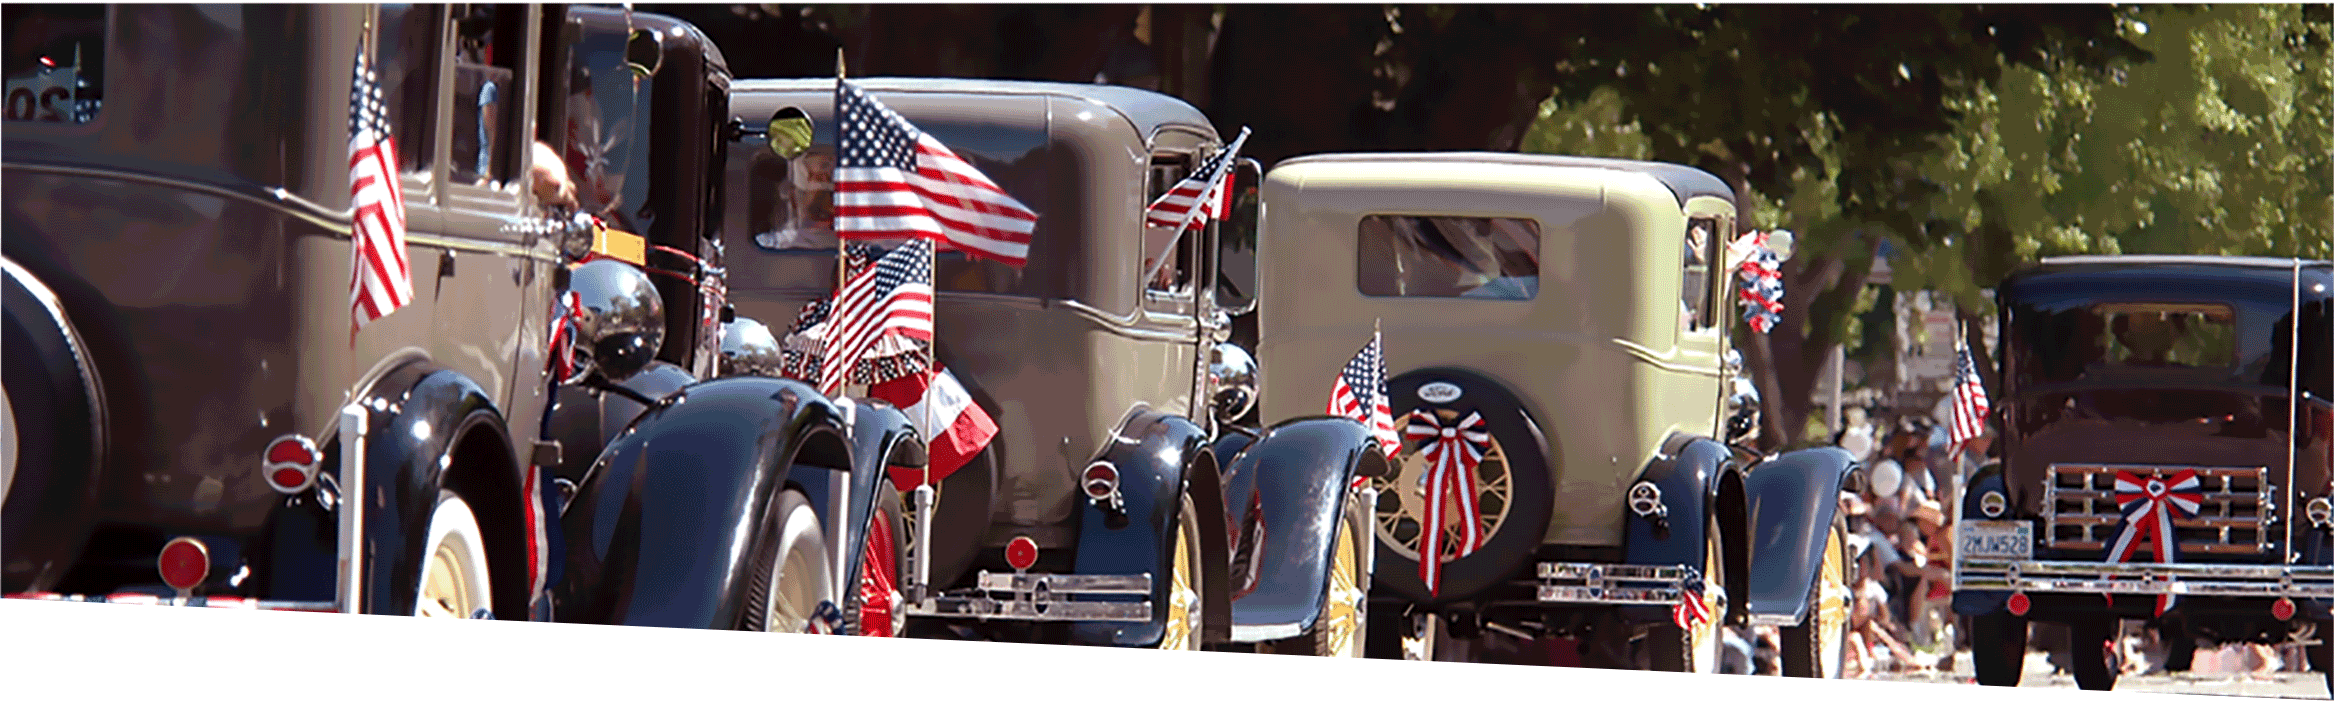 Modesto CA Official Website - Fruit yard car show